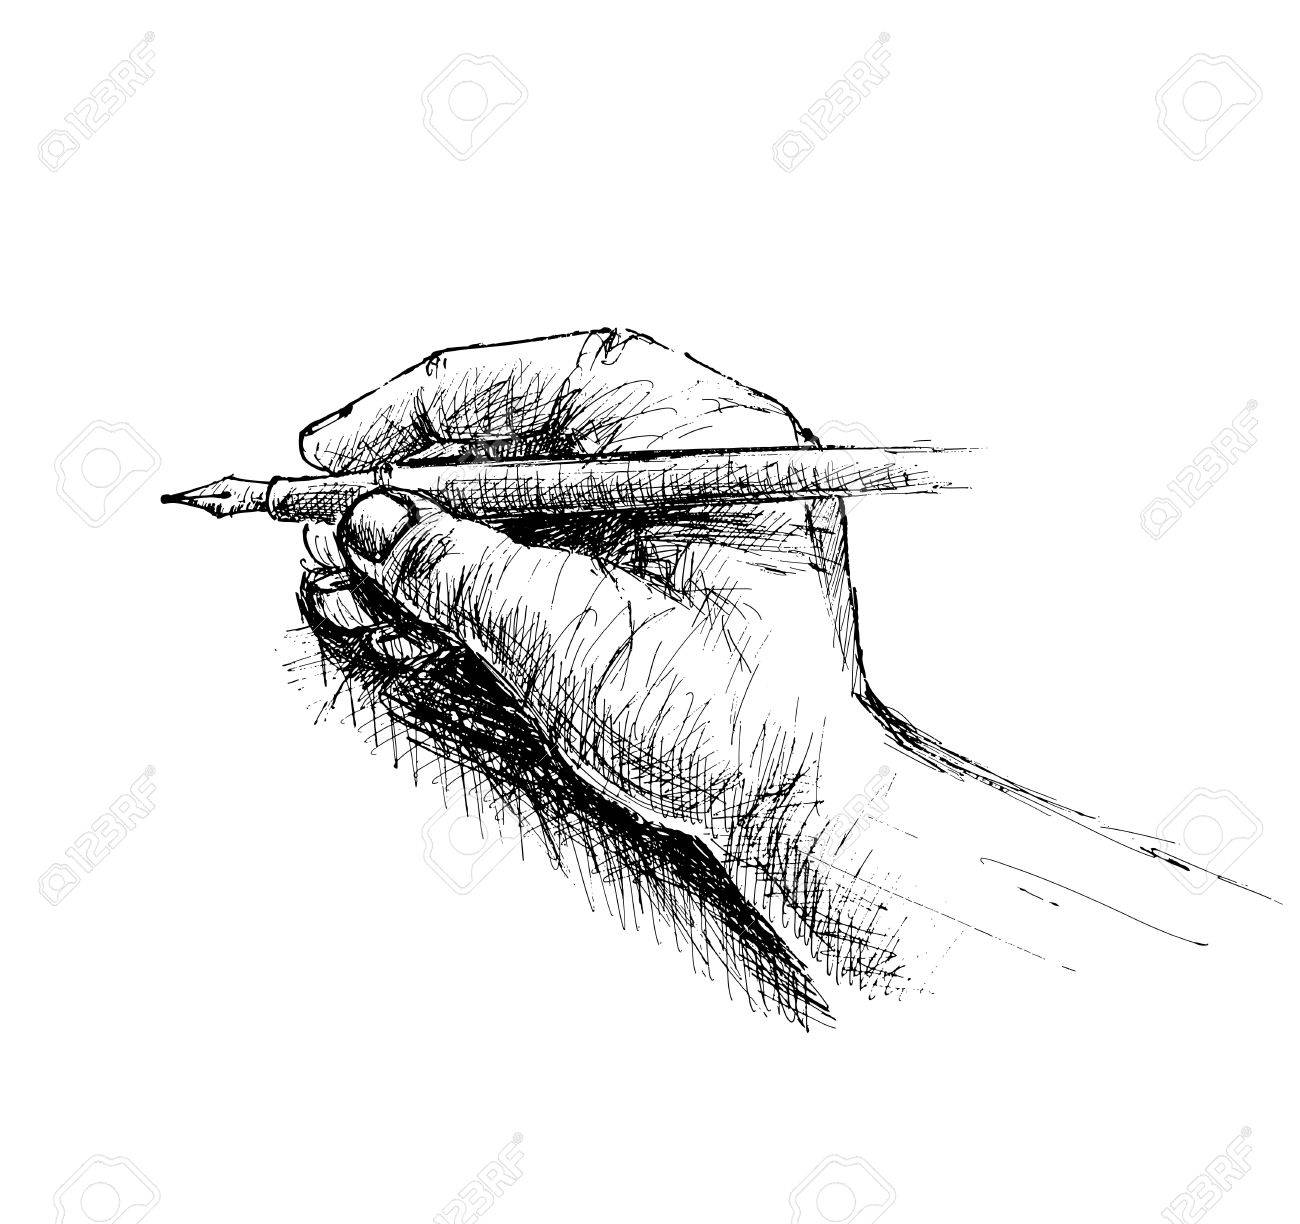 Hand holding pencil sketch isolated on white background vector illustration stock vector 60488974